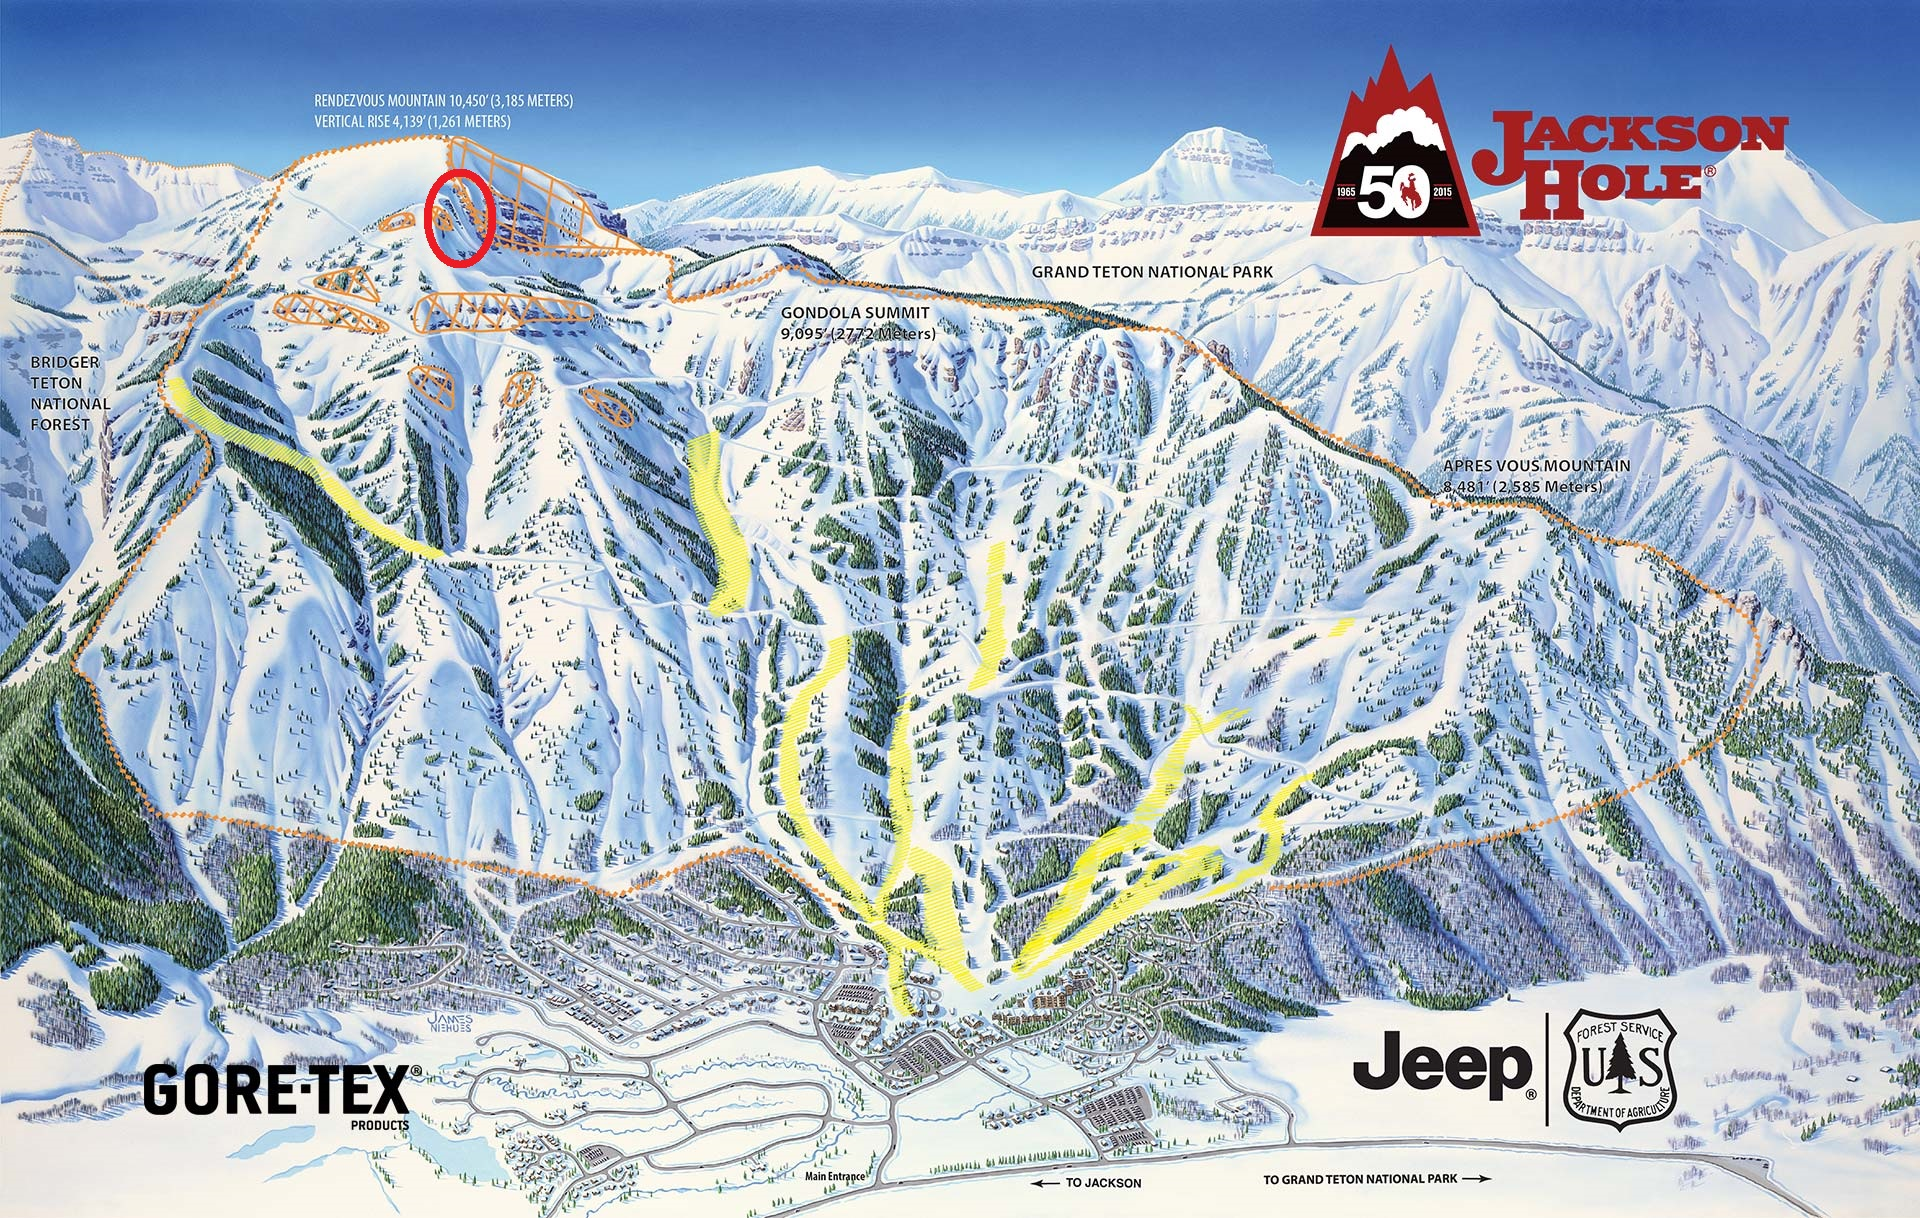 goretex-logo-background-trail-map-web